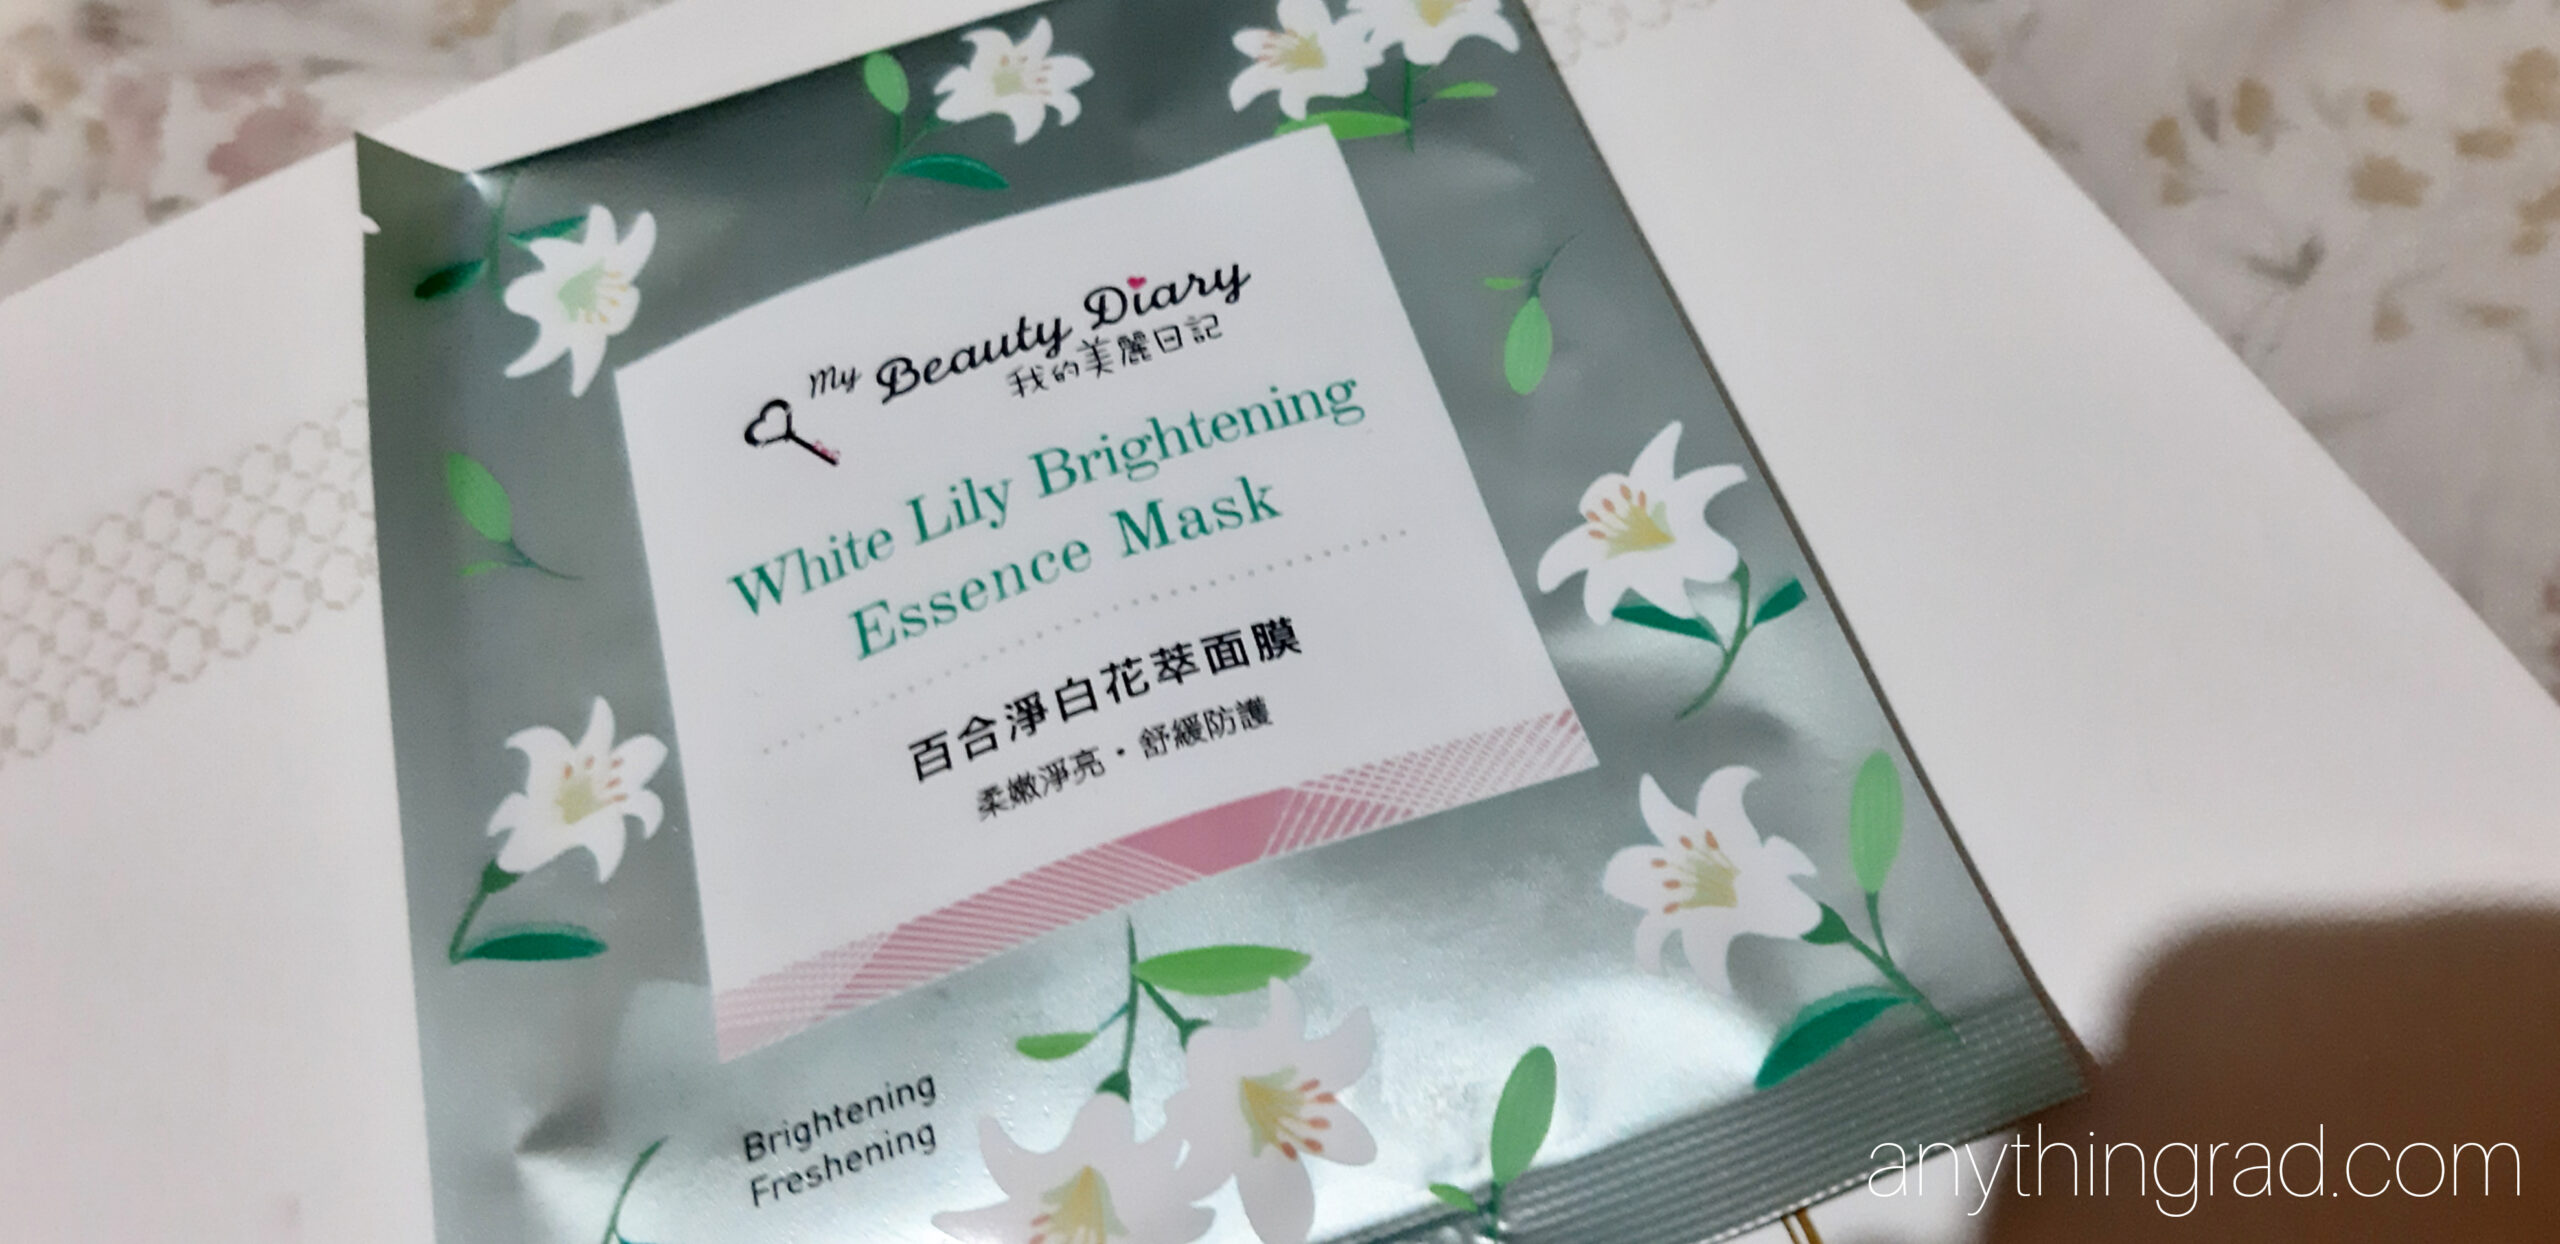 My Beauty Diary Face Mask: White Lily Brightening Essence Mask Review